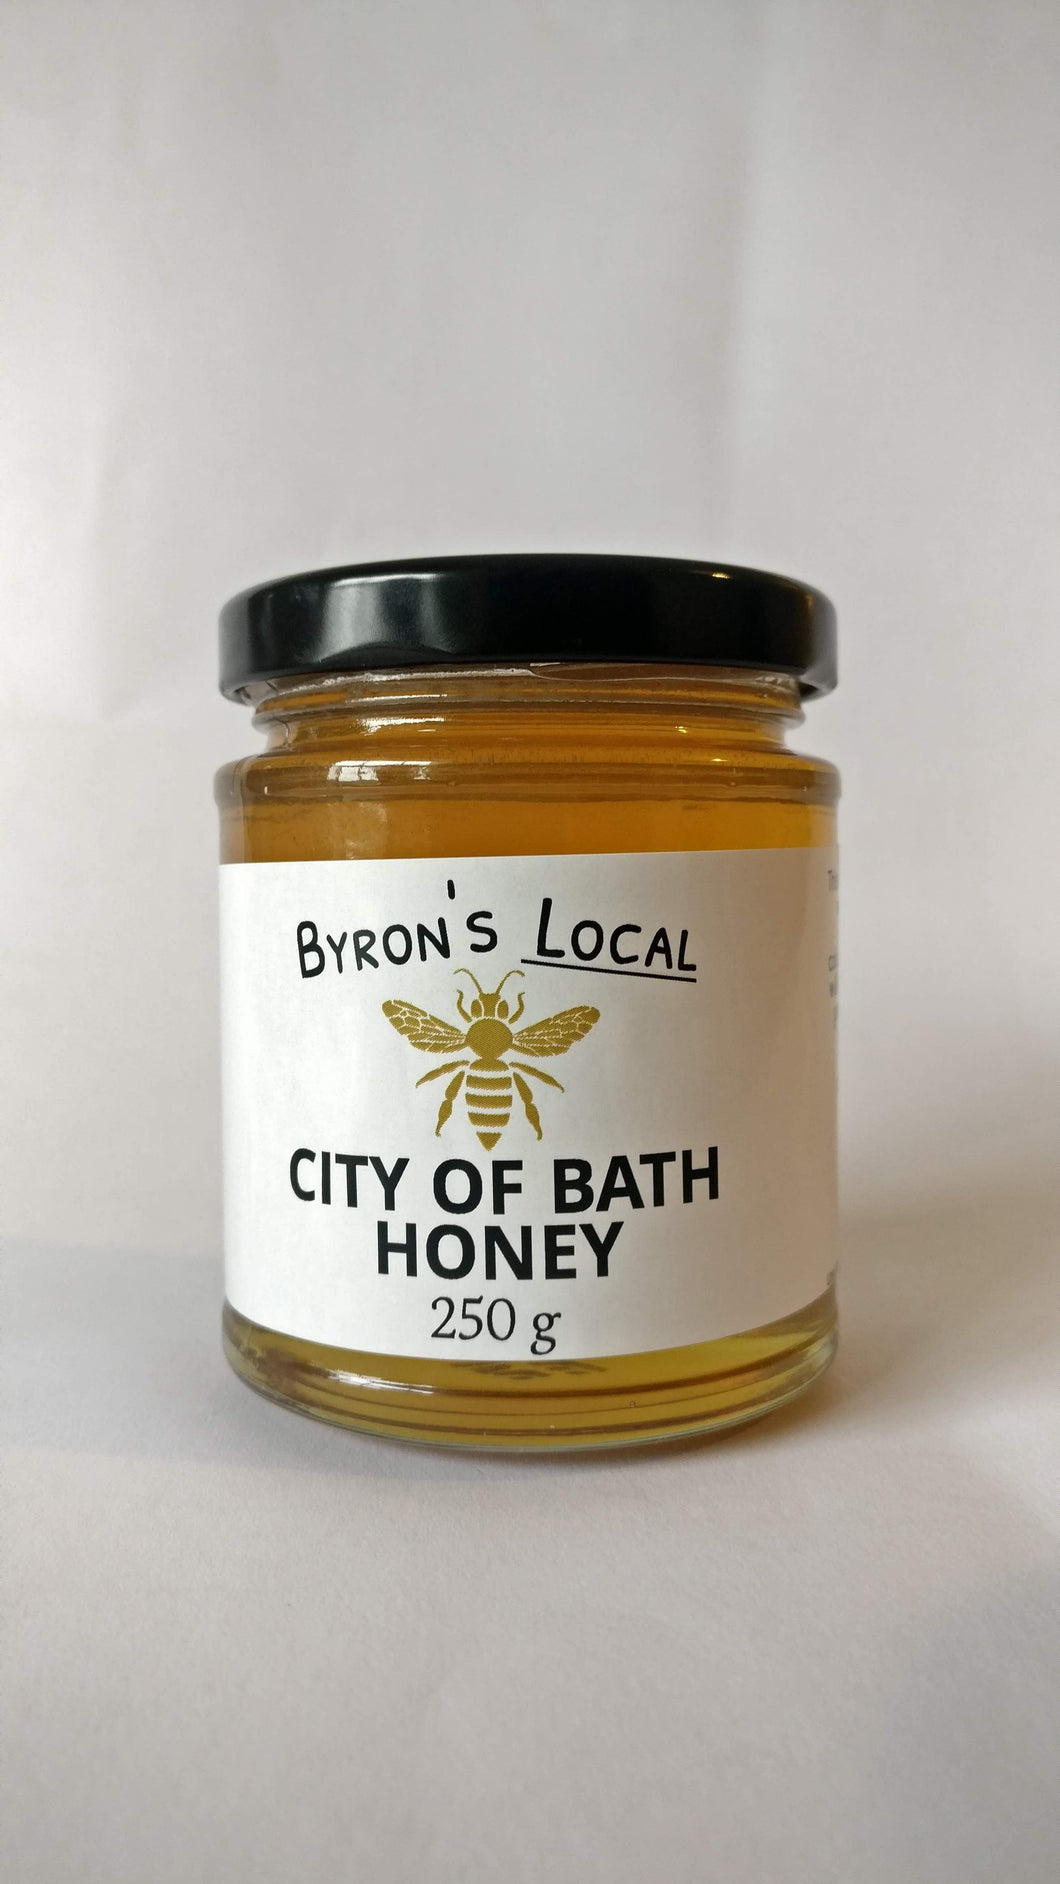 City of Bath Honey